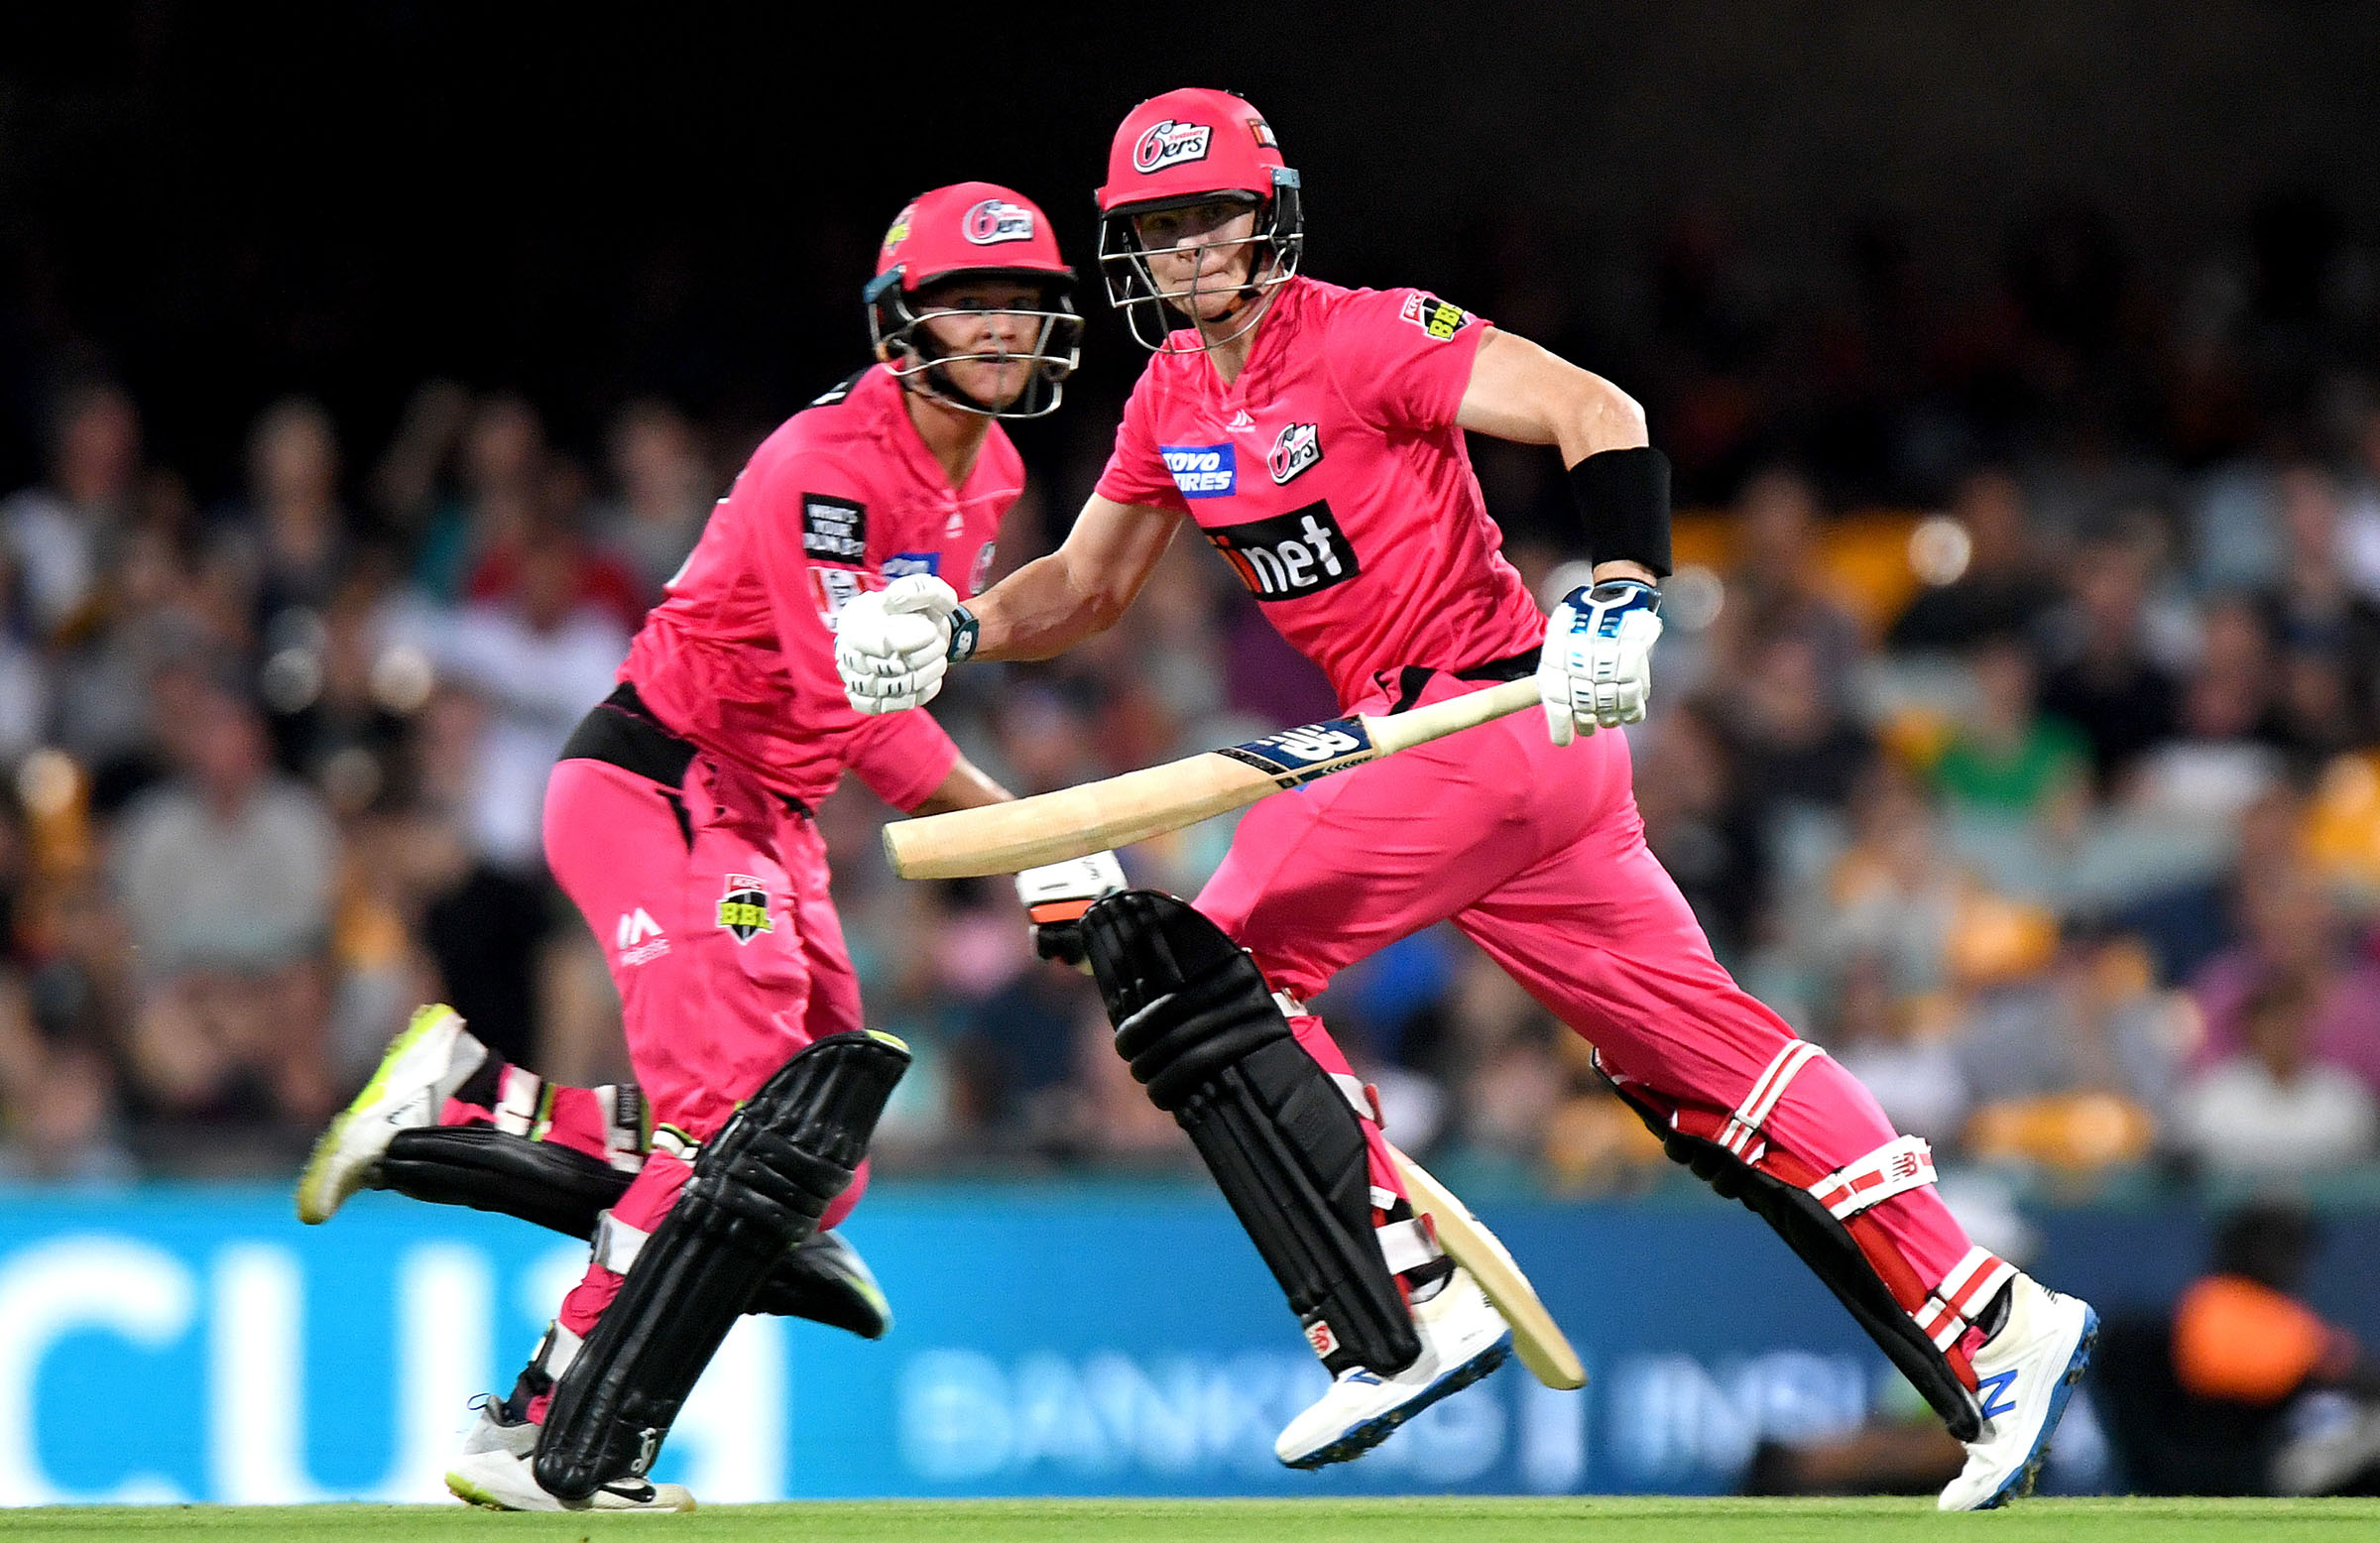 Philippe and Smith batting together during BBL|09 // Getty